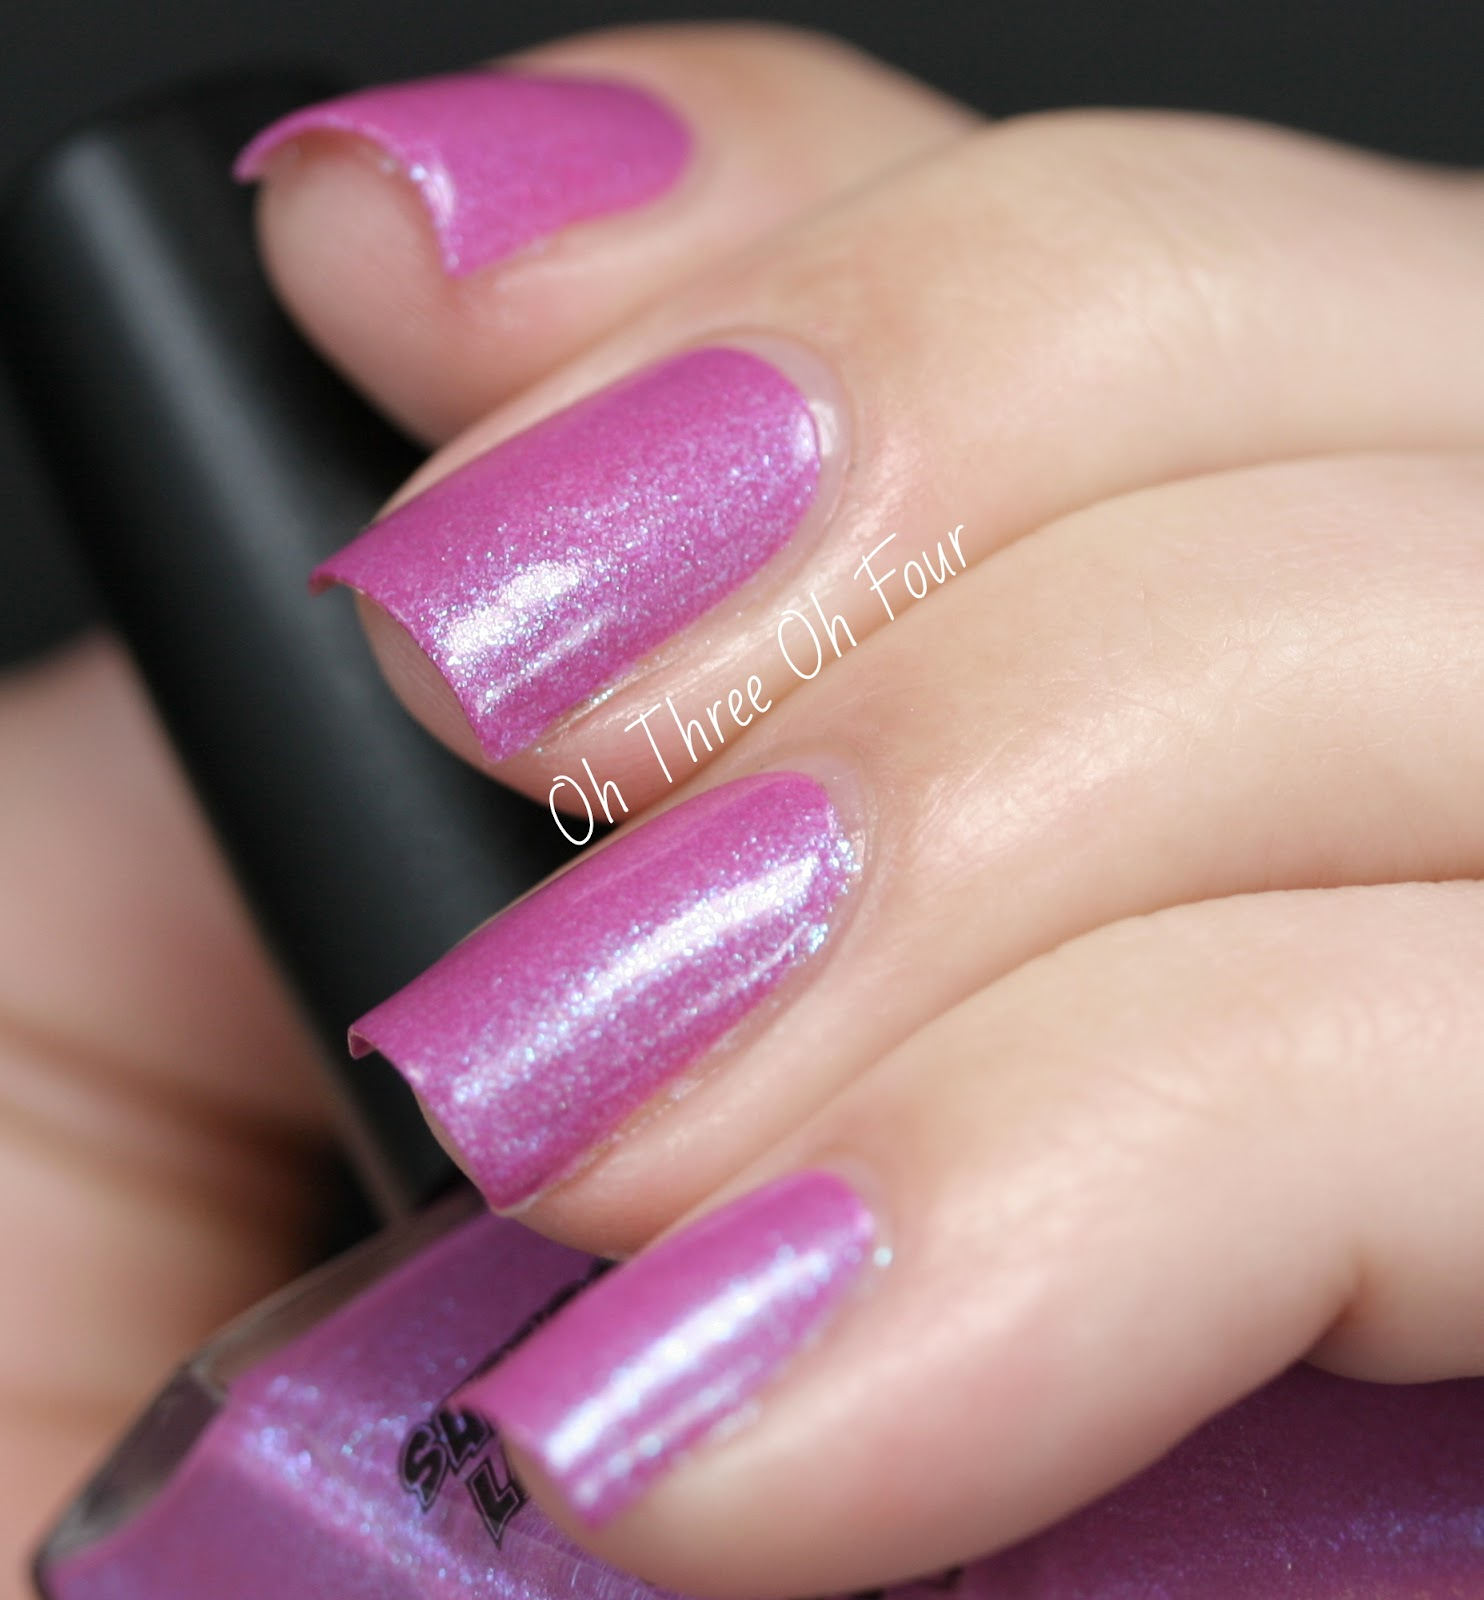 SuperChic Lacquer Fushsure Drive Me Insane Swatch